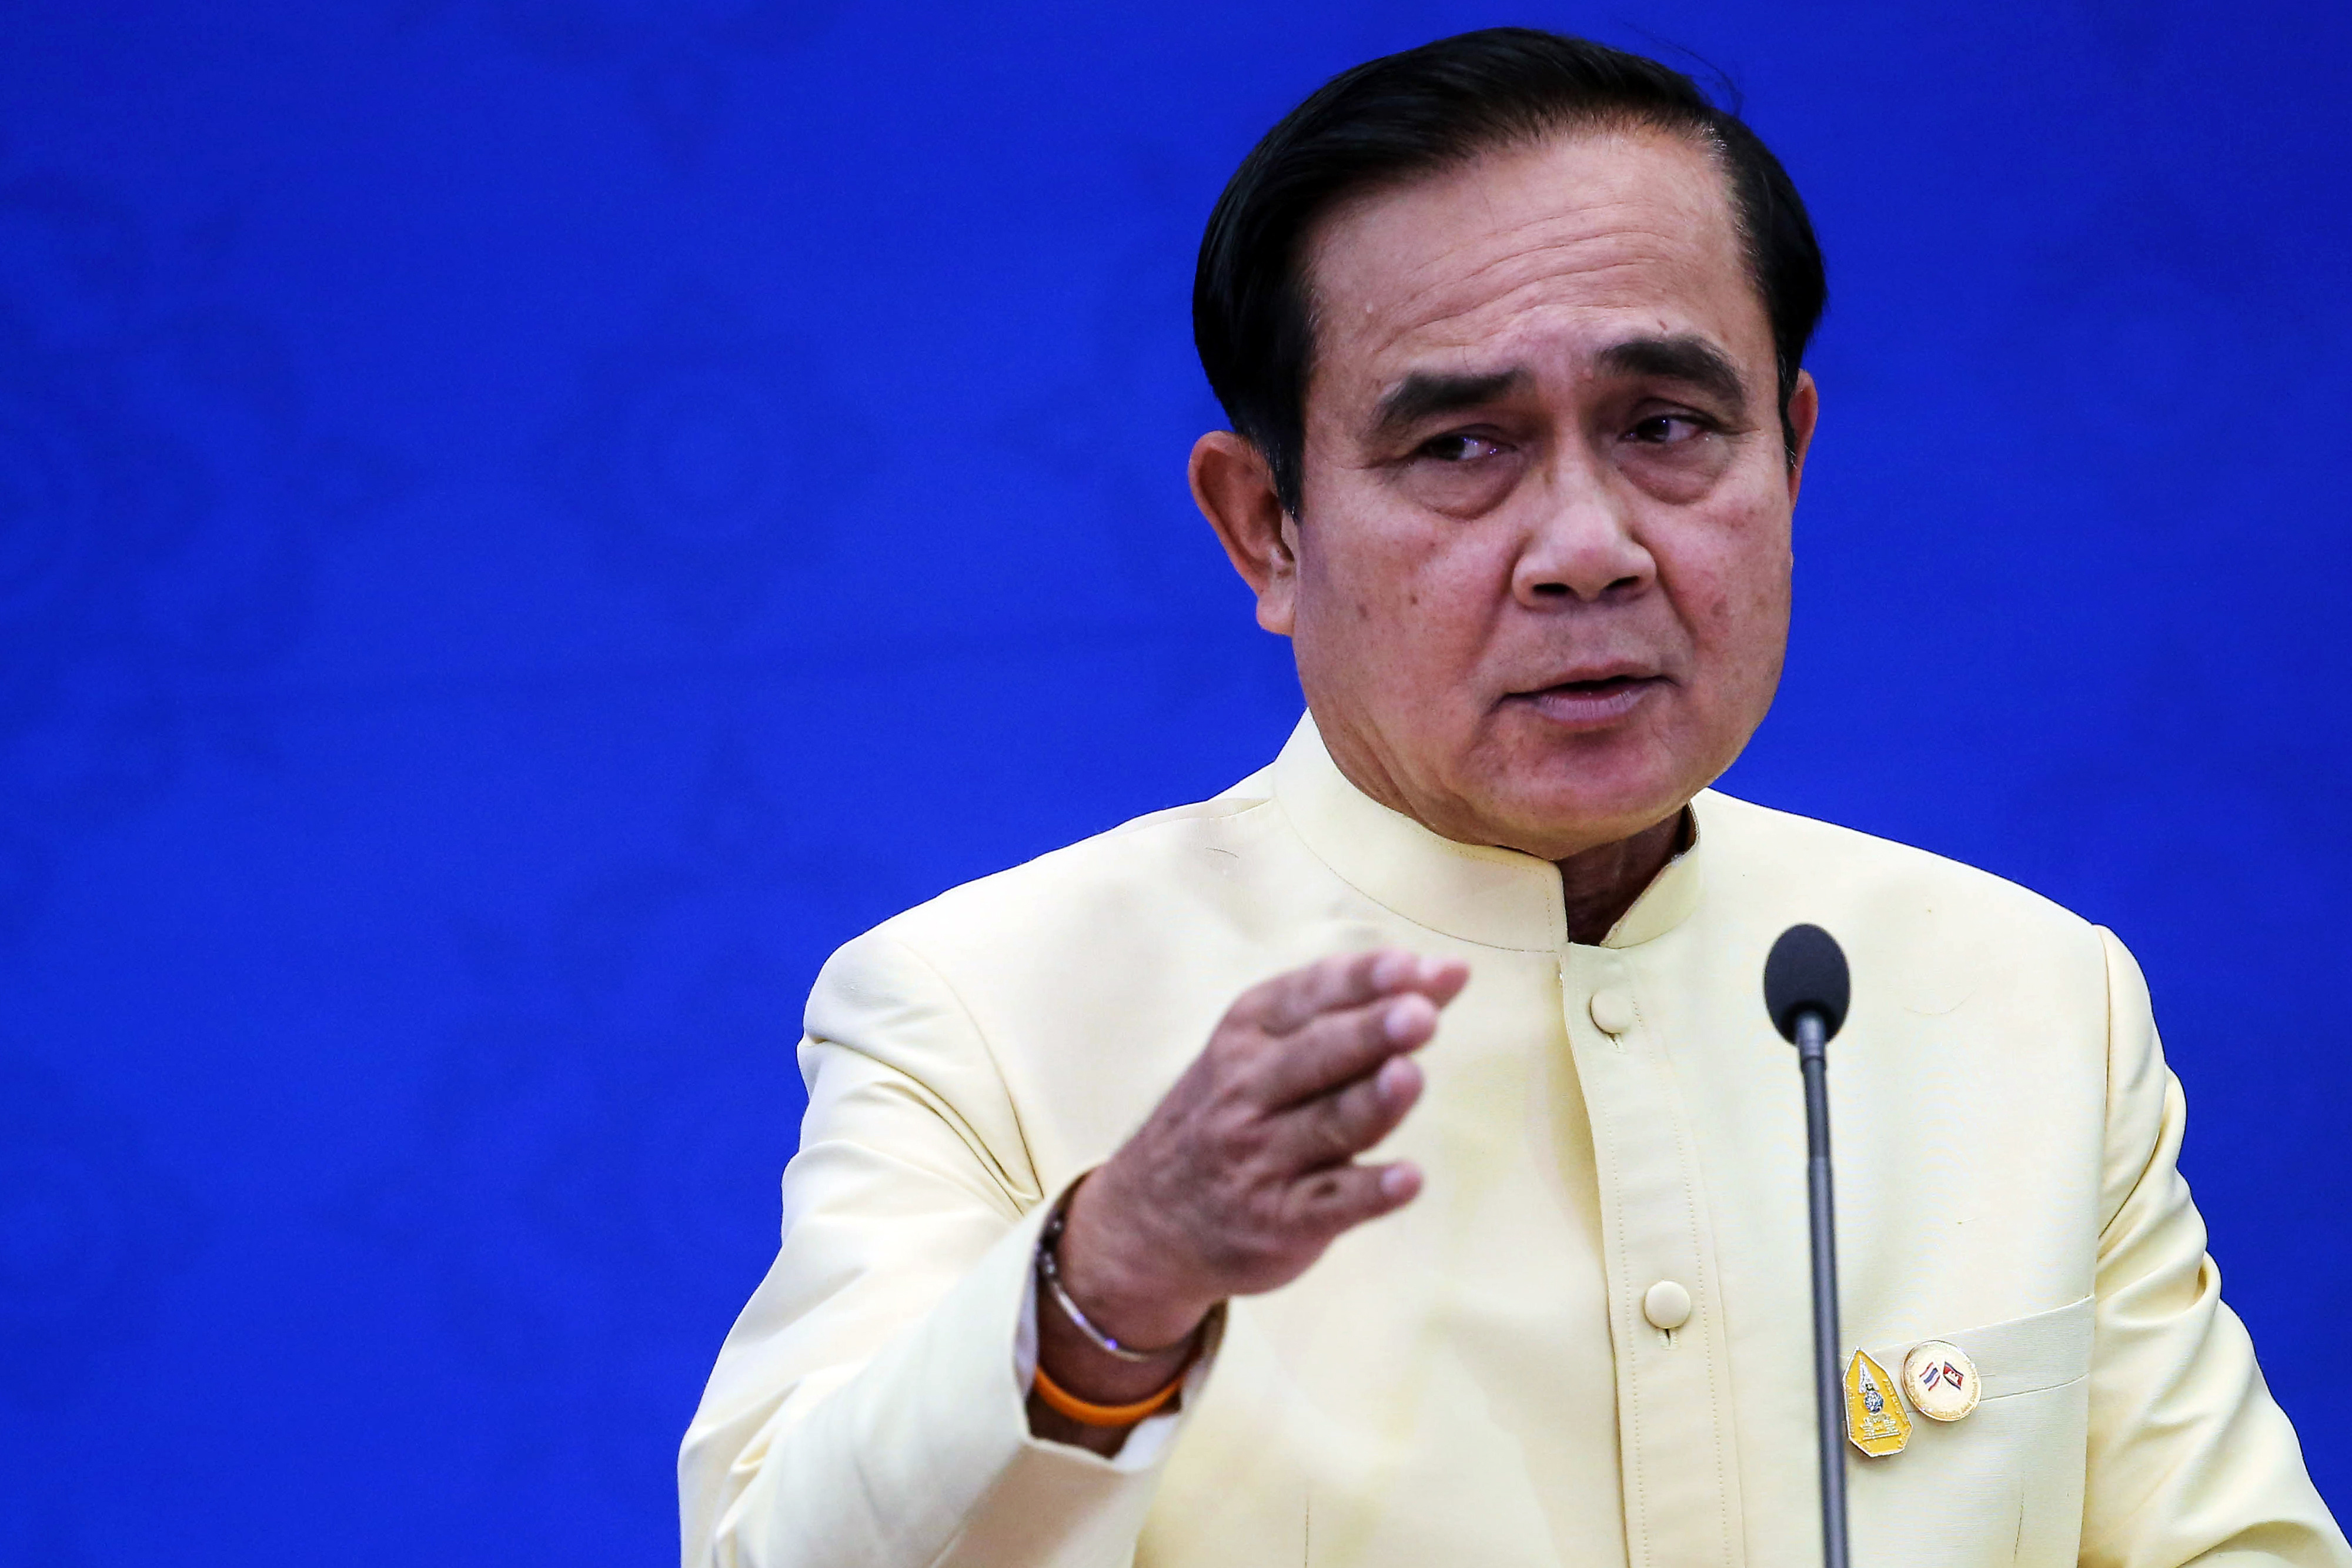 Prayuth Chan-Ocha speaks during a news conference in Bangkok on Dec. 19, 2015